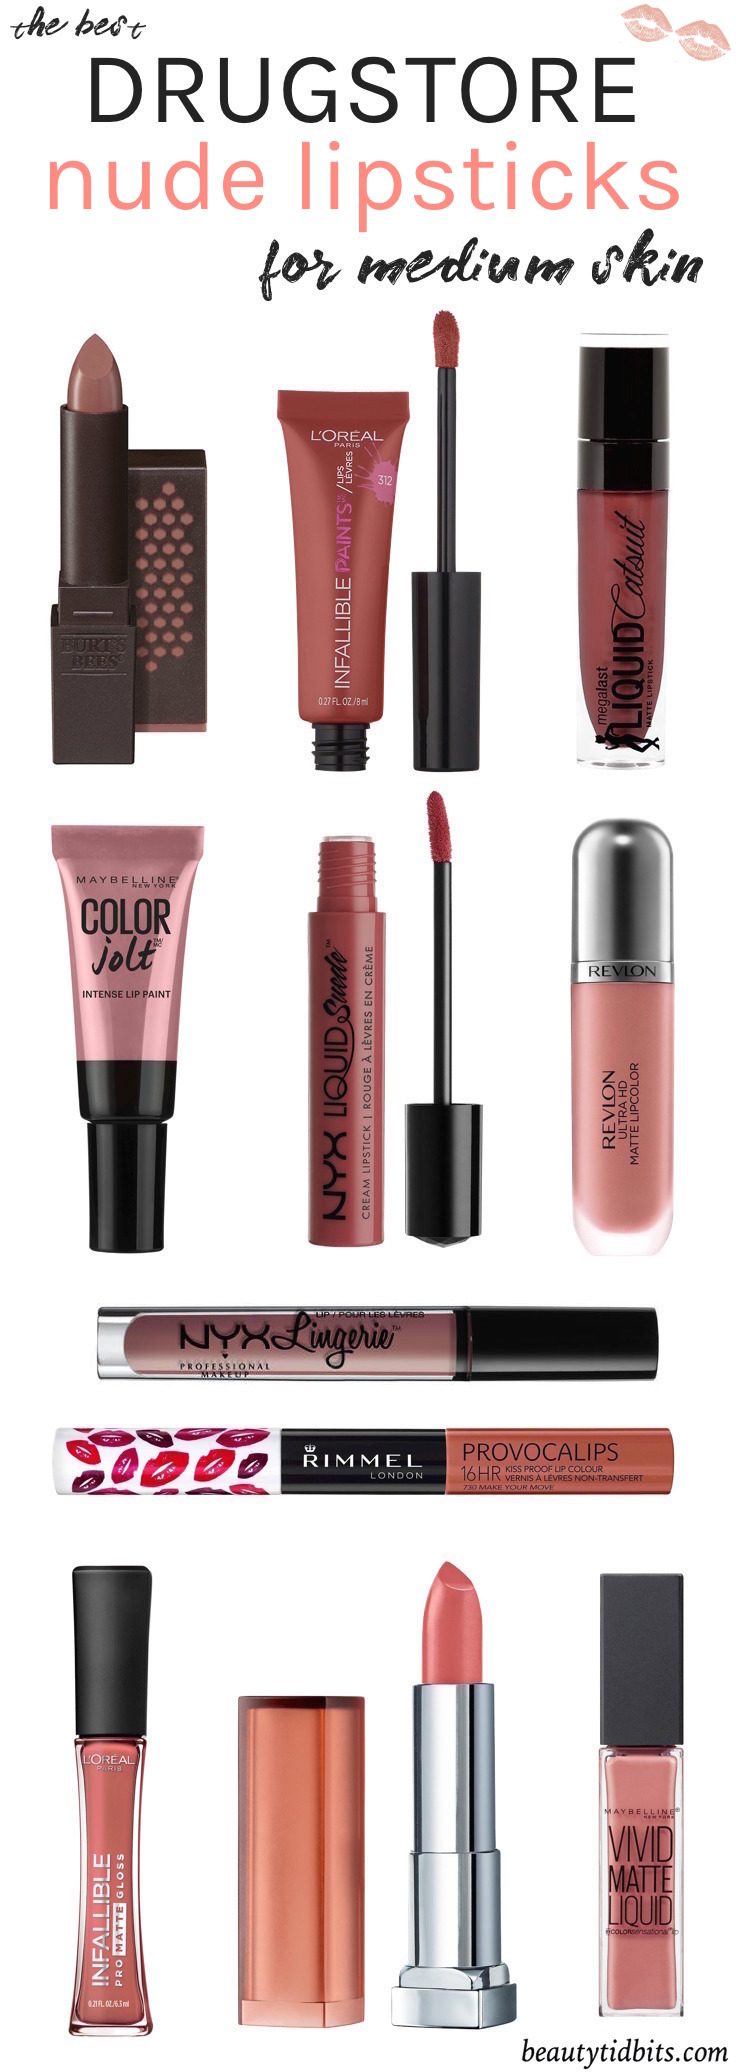 Looking for the best drugstore nude lipstick for your fair-medium olive skin? Check out this handy guide to find your perfect neutral lip colors, all under $  10!